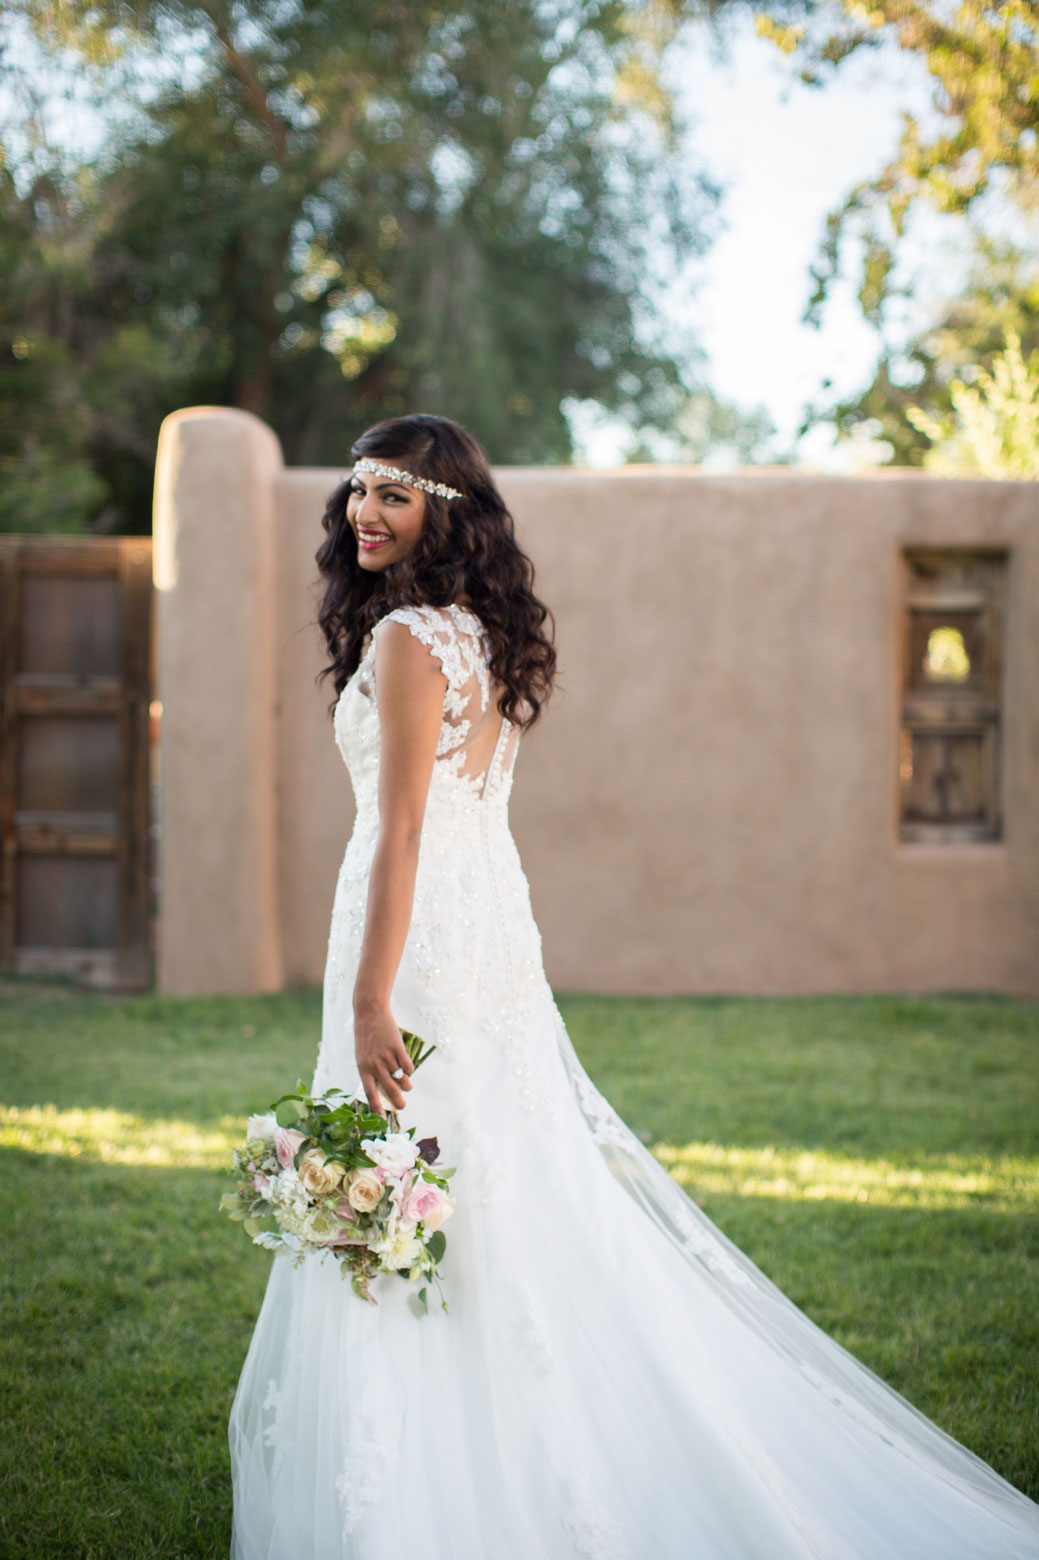 Vineyards & Diamonds 2 Gorgeous Illusion Back Wedding Dress Looks | Photograph by Alicia Lucia Photography  https://storyboardwedding.com/illusion-back-wedding-dress-looks/